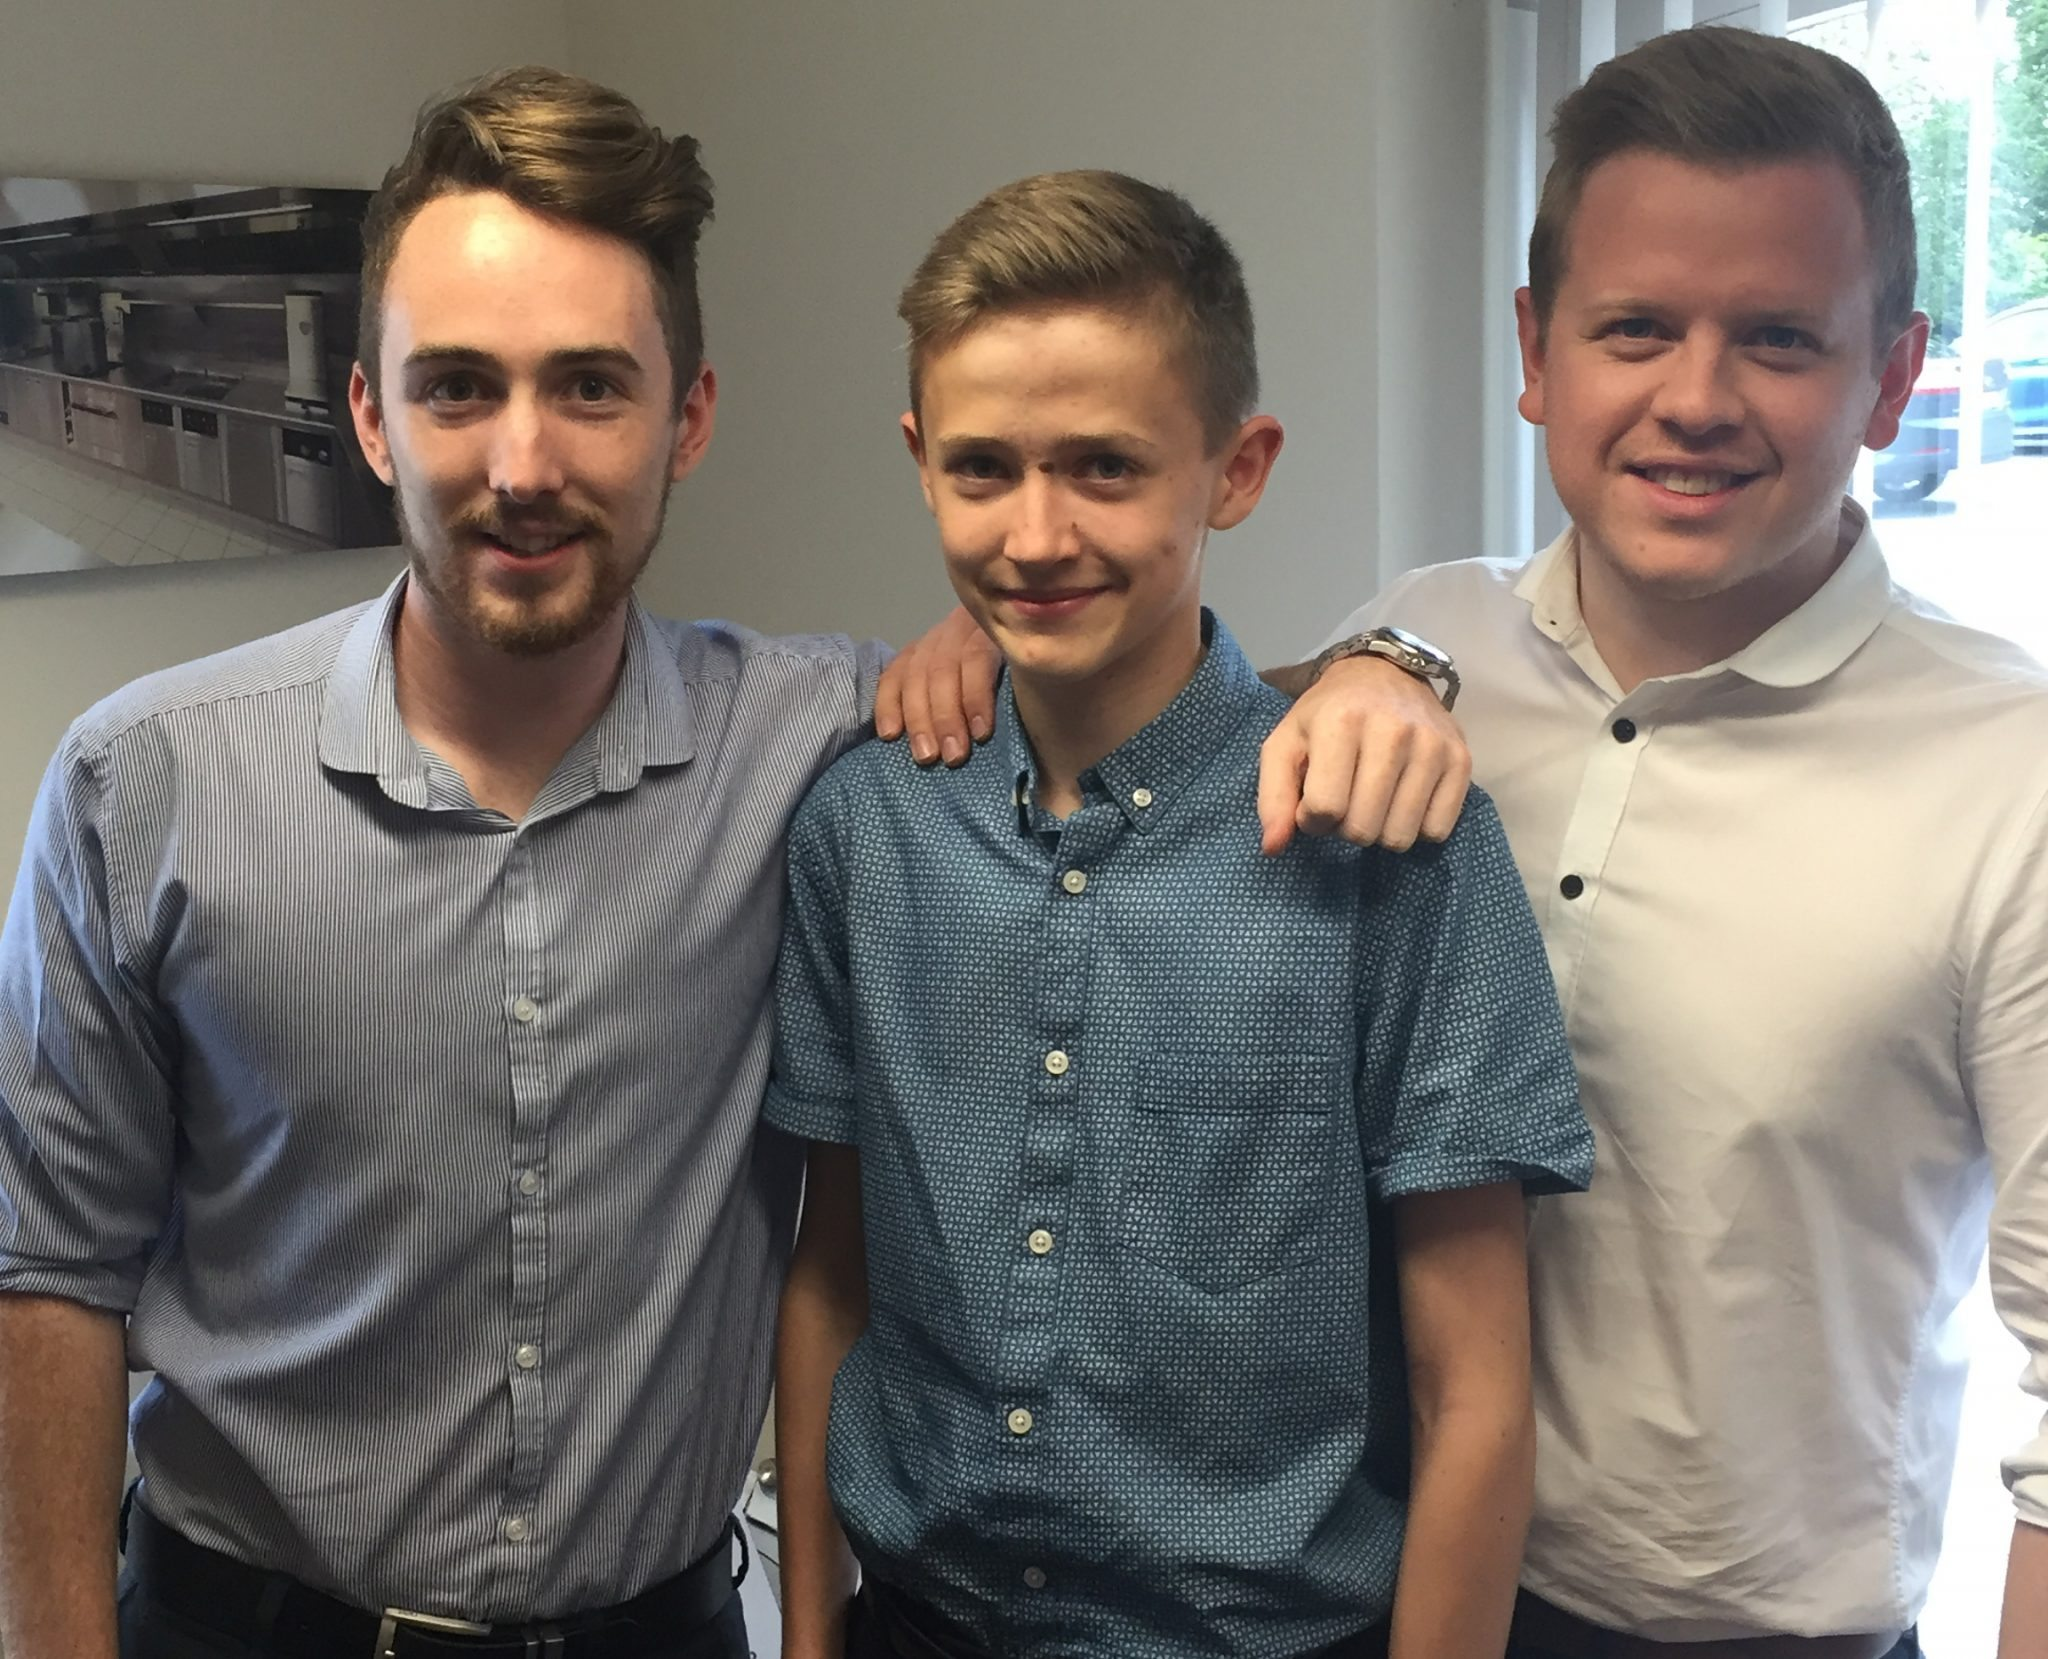 Family matters - C&C welcomes James for Work Experience